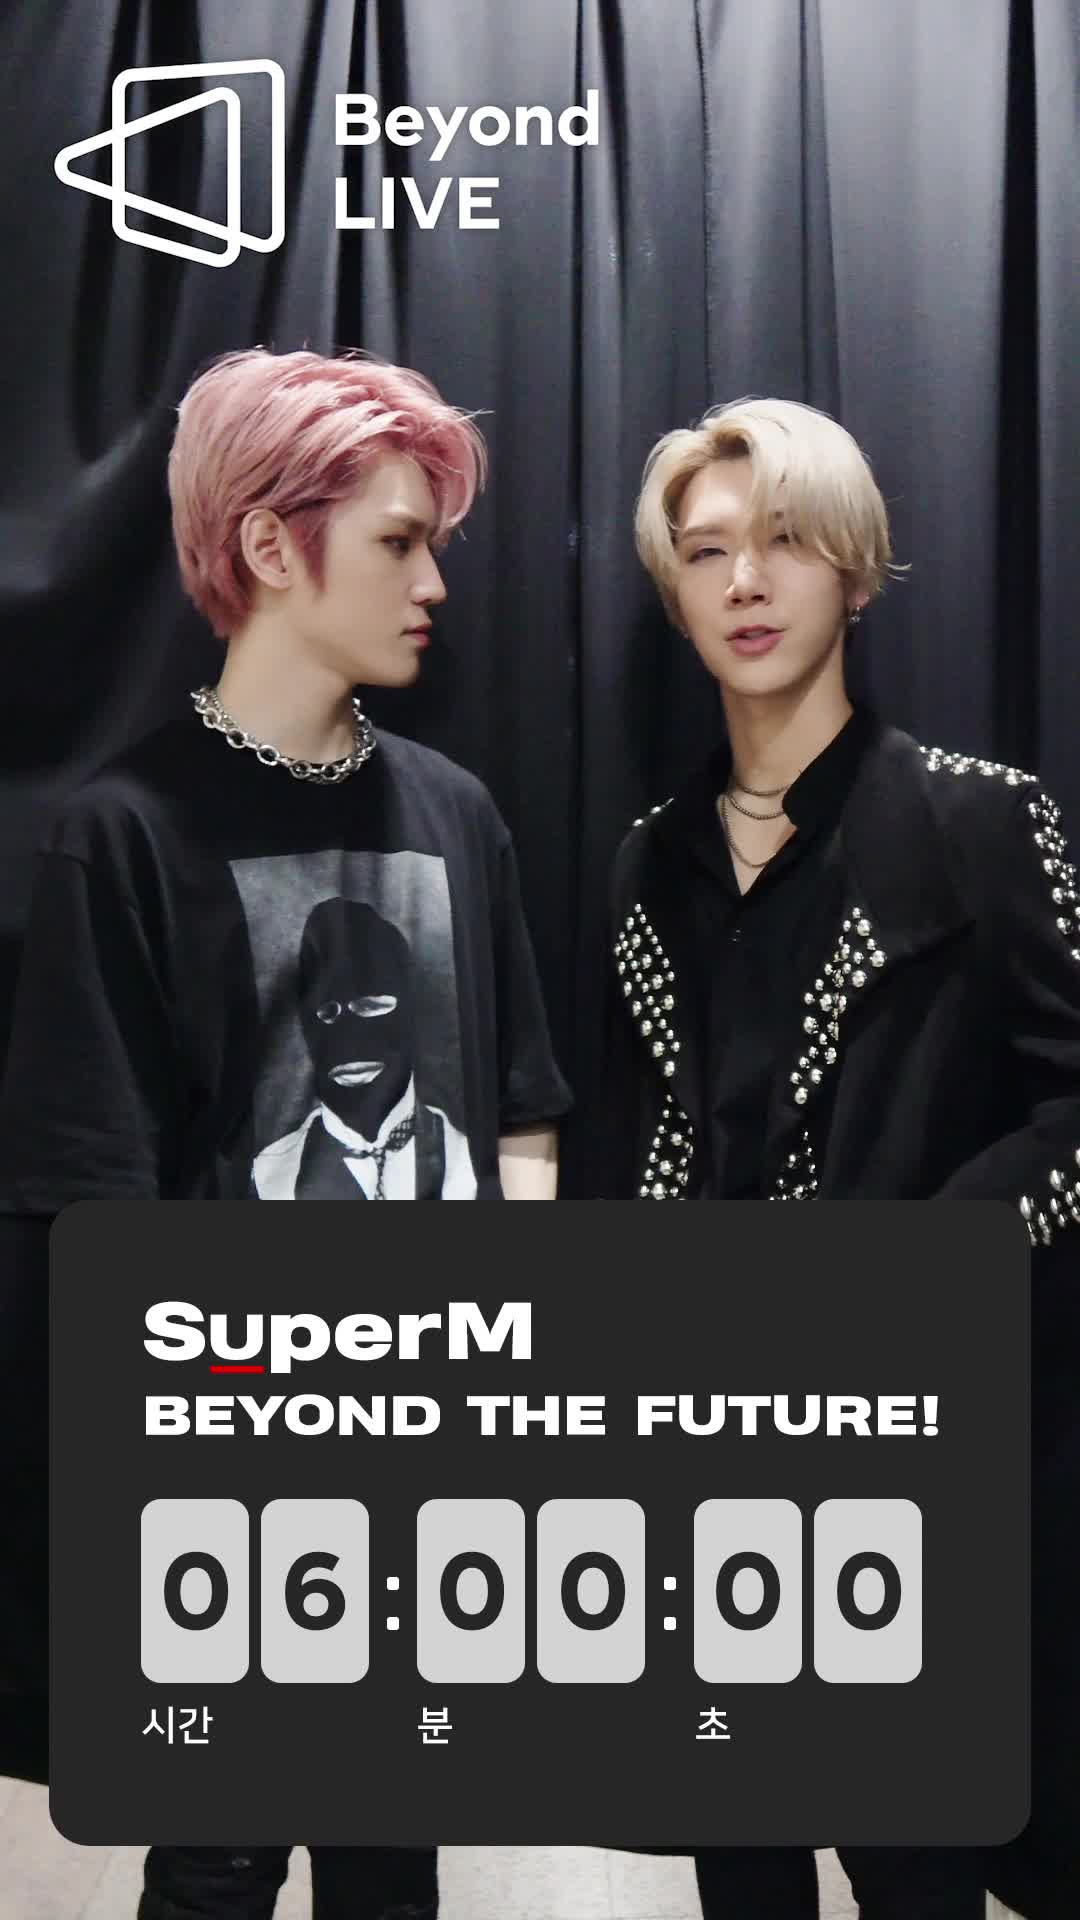 'SuperM Beyond the Future' D-DAY🔥6 HOURS TO GO⏰